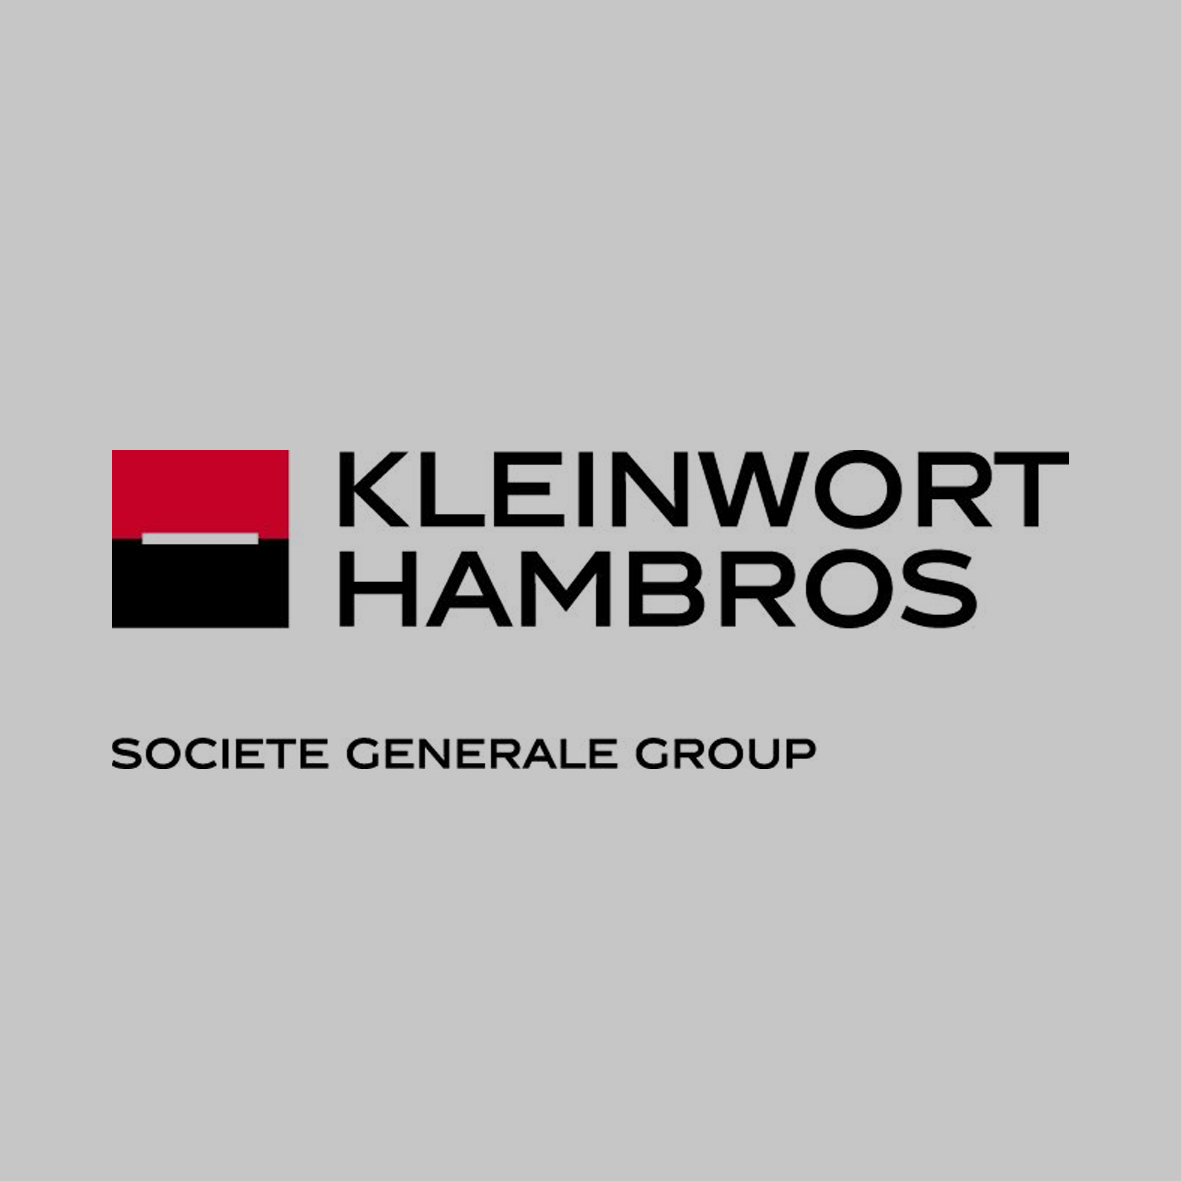 Kleinwort Hambros   Established in 1786 and 1839 respectively, Kleinwort Benson and SGPB Hambros have been helping clients manage their wealth for over 200 years. Kleinwort Hambros is the private banking and wealth management division of Societe Generale in the UK, Channel Islands and Gibraltar, with assets under management of £14.2bn and over 900 employees.  Providing individuals, families, entrepreneurs and family offices with comprehensive wealth management and private banking services including investment management, domestic and international wealth planning, lending, fiduciary and banking services.  Kleinwort Hambros also has a range of teams offering services to private clients based in the UK and overseas.